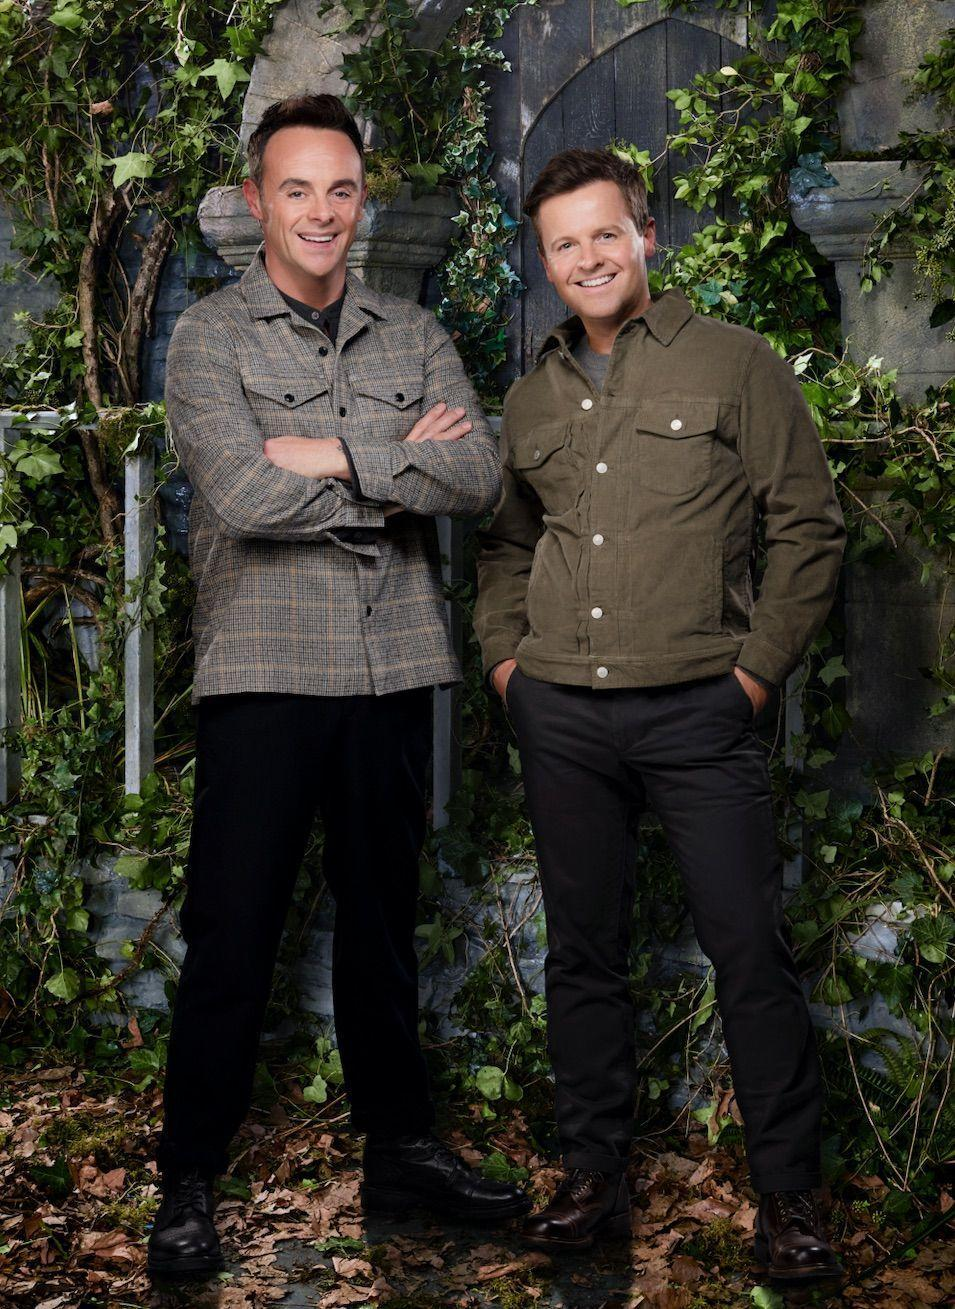 <p>I'm a Celebrity...Get Me Out Of Here! is back with 10 brave new celebrities ready to take on everything the Welsh countryside can throw at them.</p><p>This year, the stars will be moving into Gwrych Castle in North Wales due to the travel restrictions around COVID-19, so it will be very different than the usual warm Australian jungle.</p><p>Here's who will be heading in to face those Bushtucker Trials...</p>